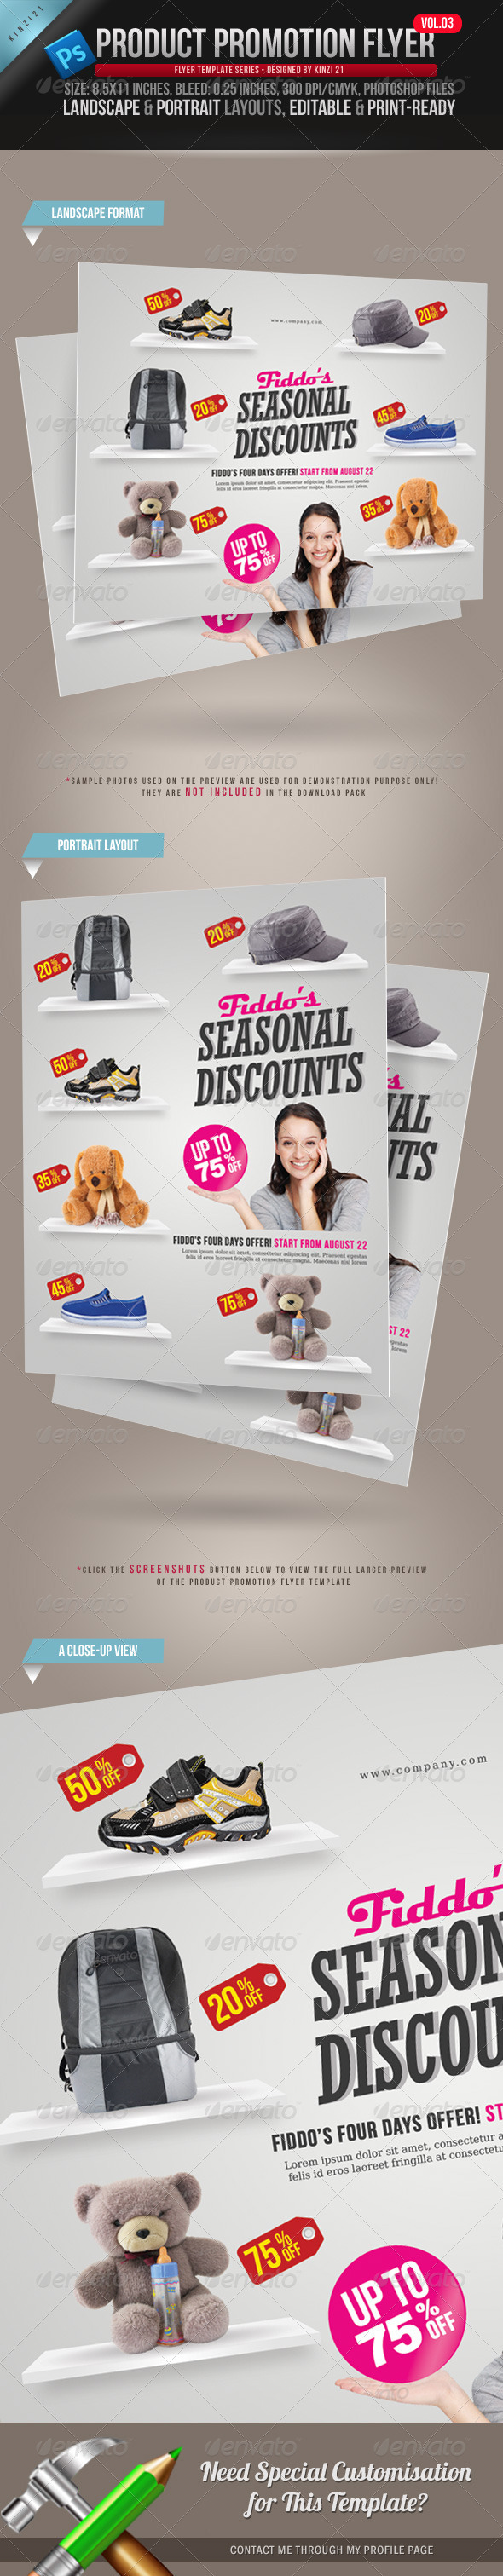 Product Promotion Flyer Vol. 03 - Commerce Flyers